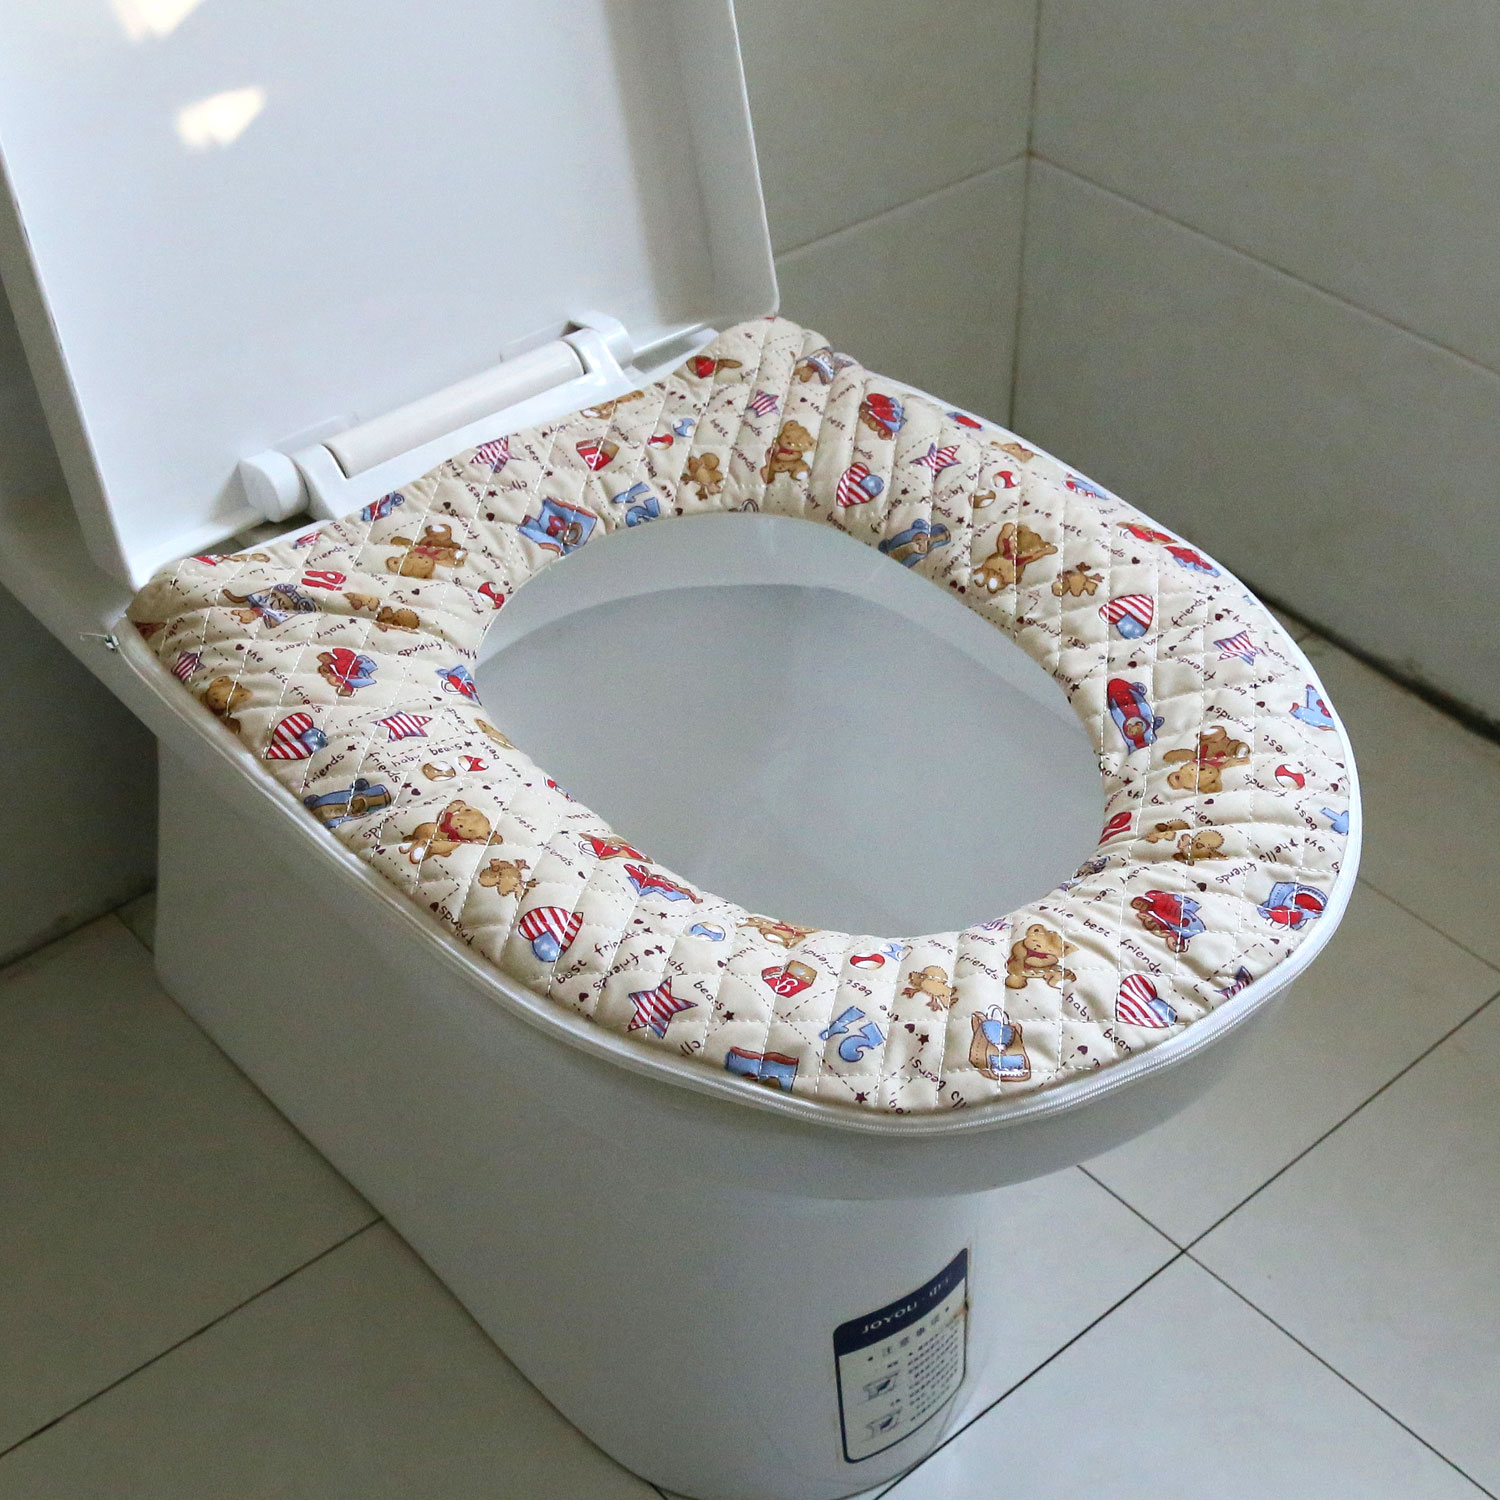 Xin instrument pastoral thick mat toilet potty toilet cover toilet seat cover toilet seat cover zipper limit shipping